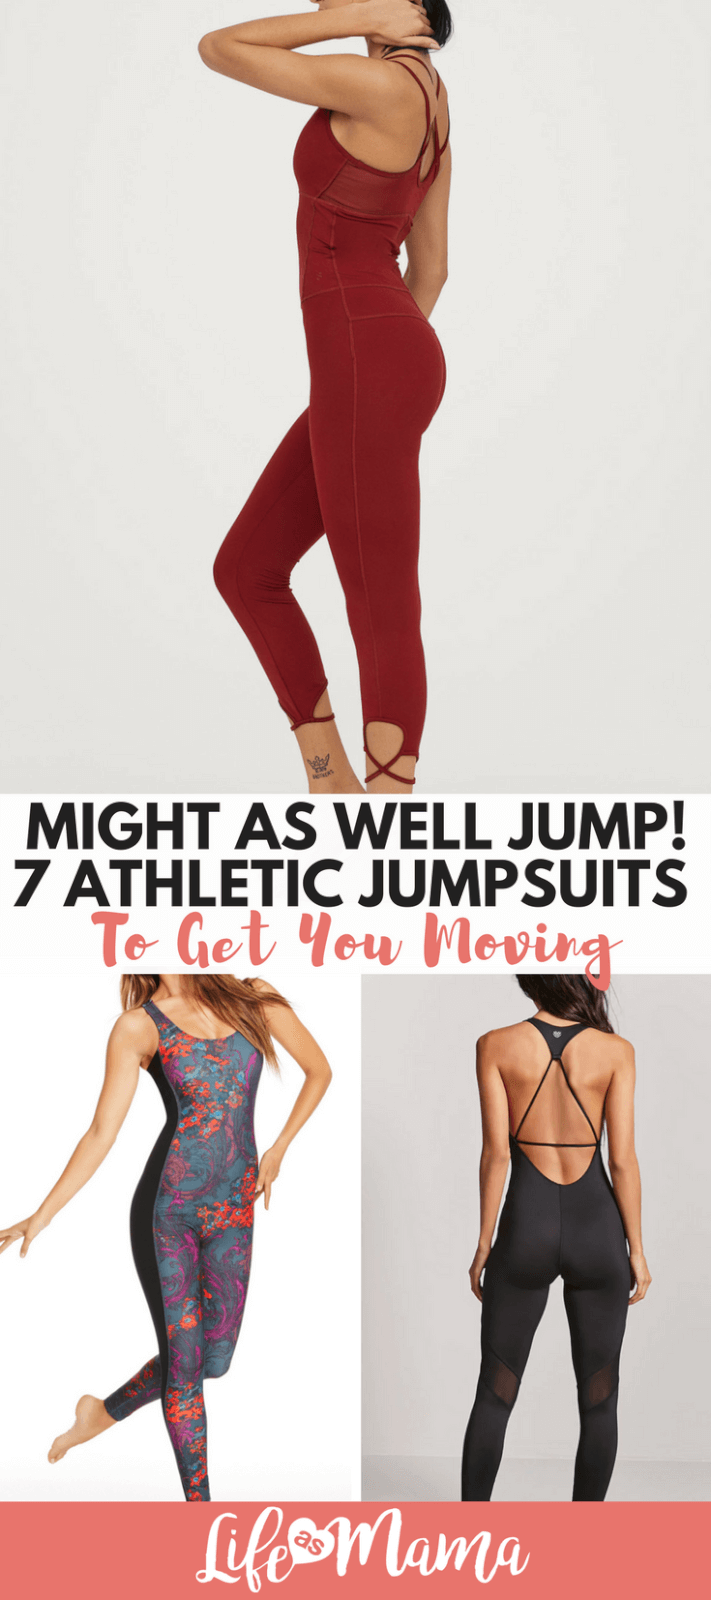 Might As Well Jump! 7 Athletic Jumpsuits to Get You Moving.1